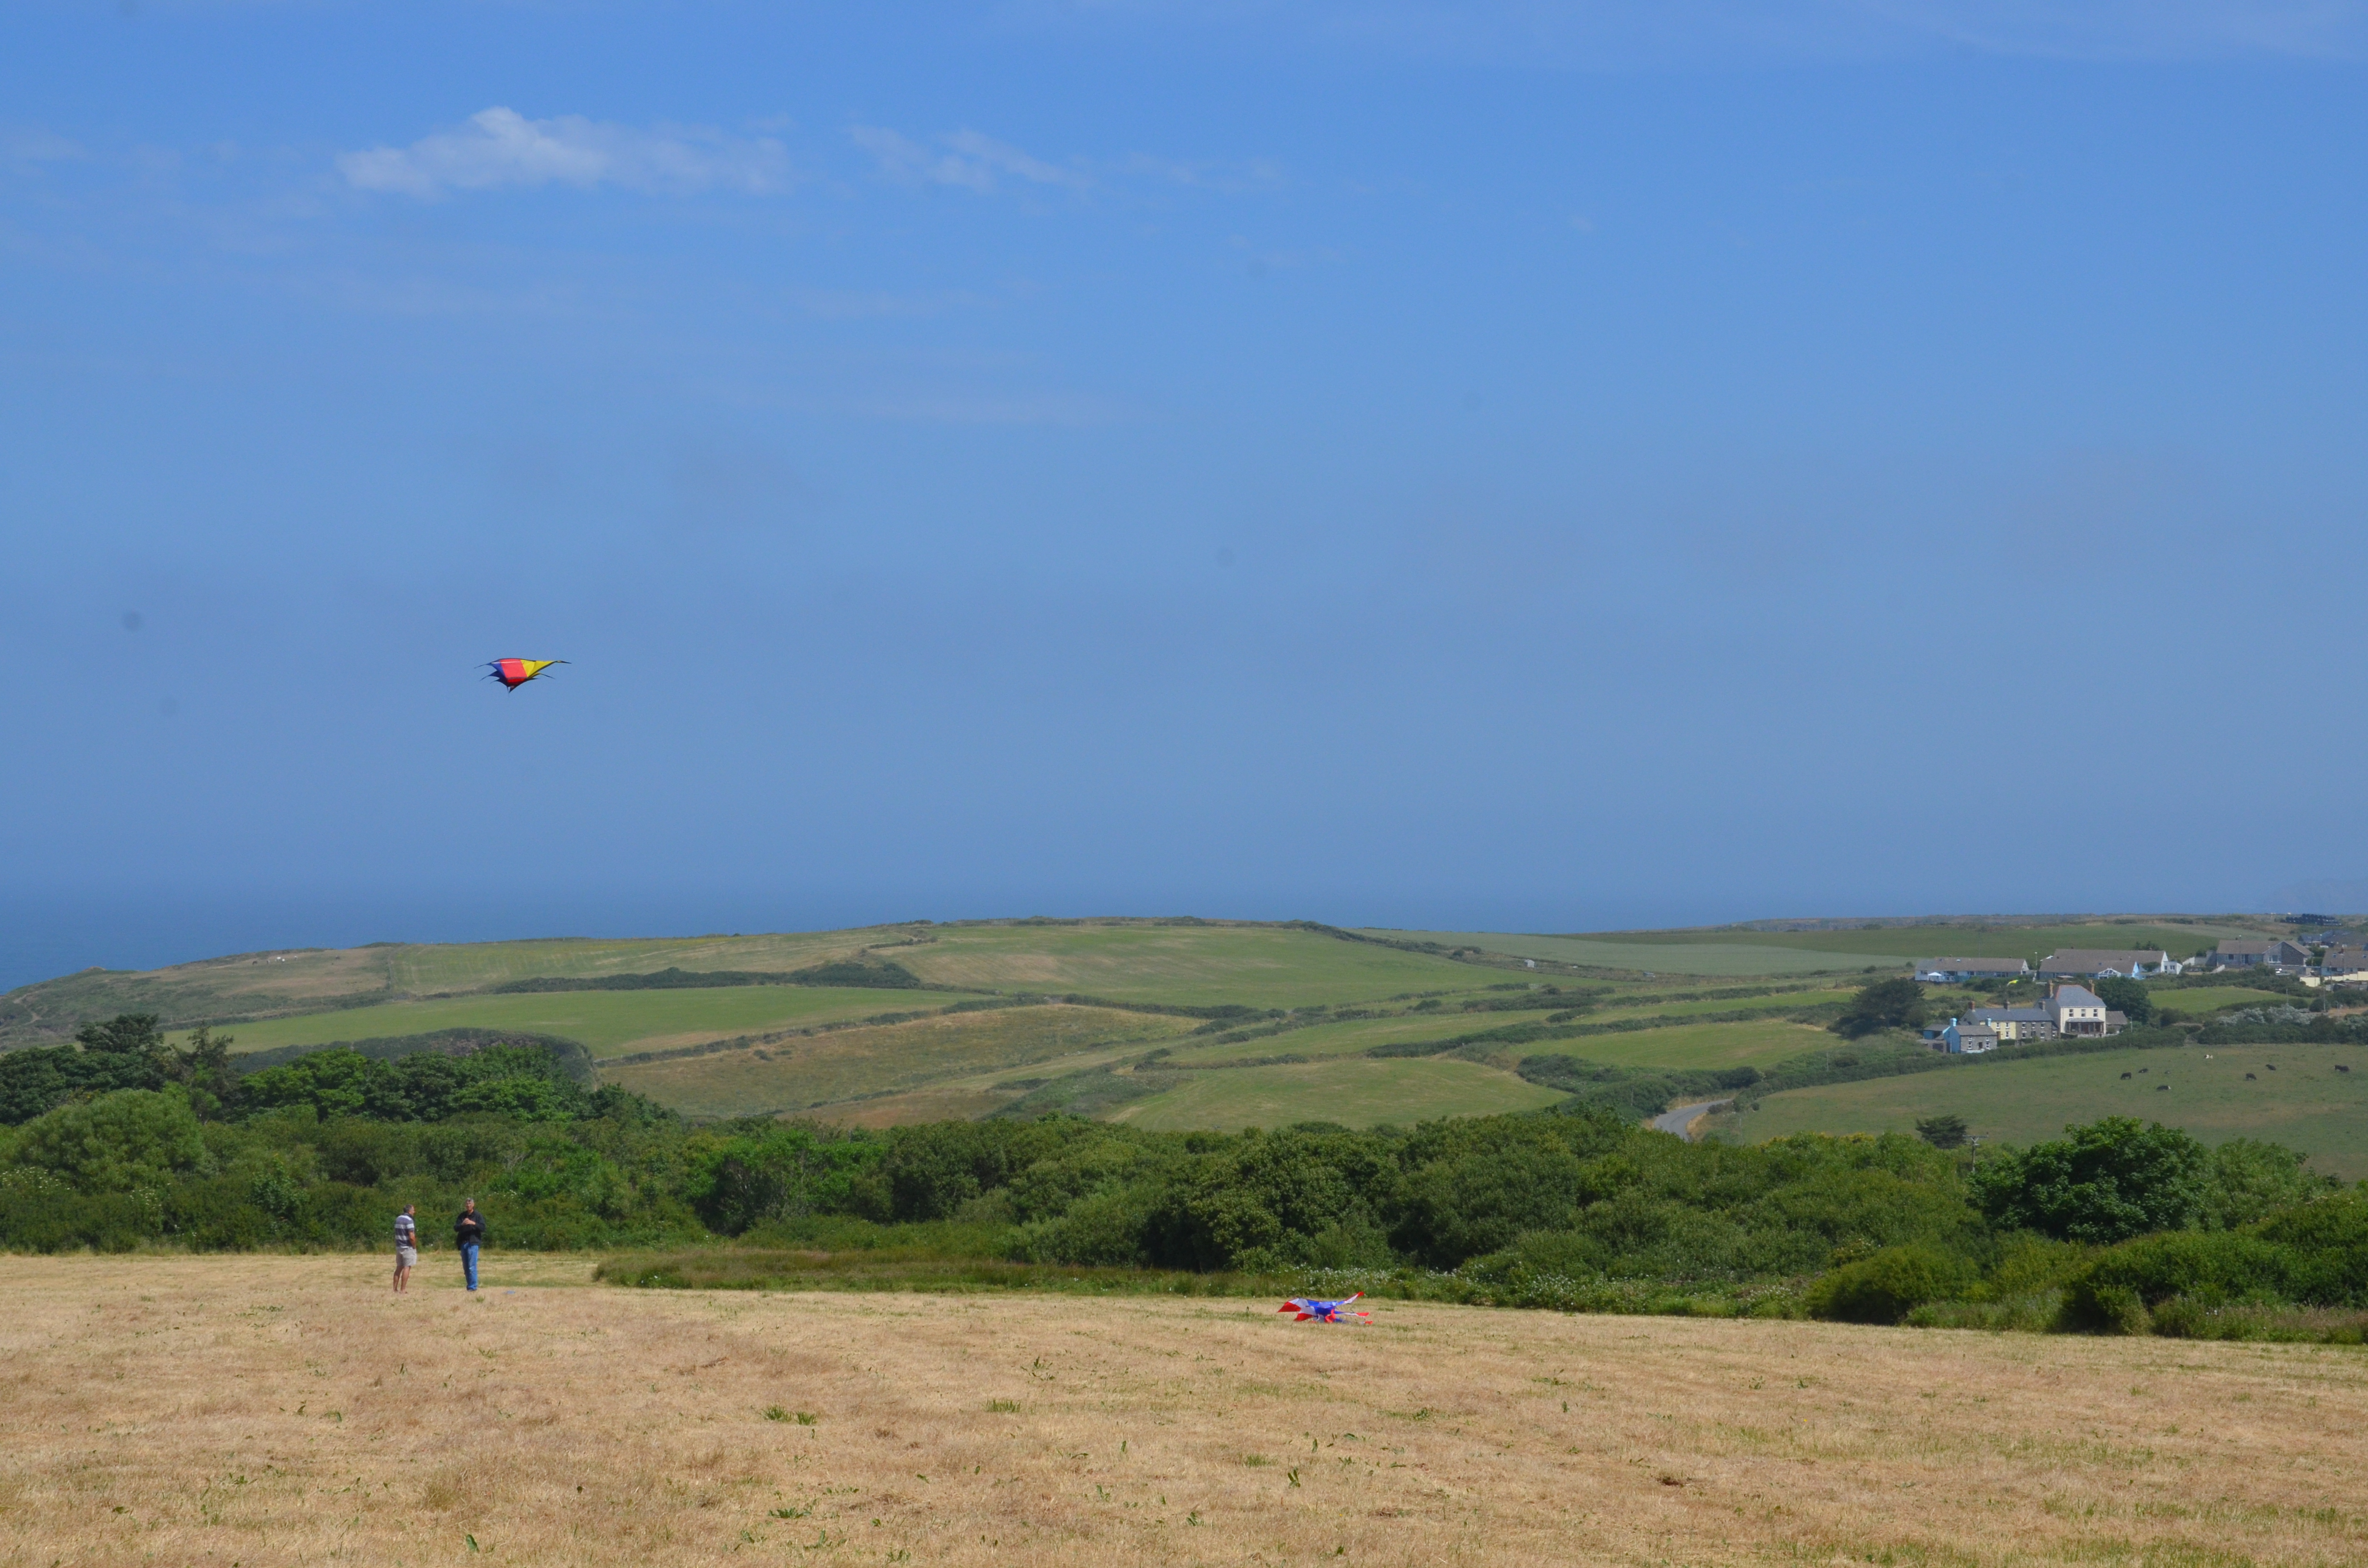 Yr Hafan - Kite flying in our field overlooking the sea and Trefin